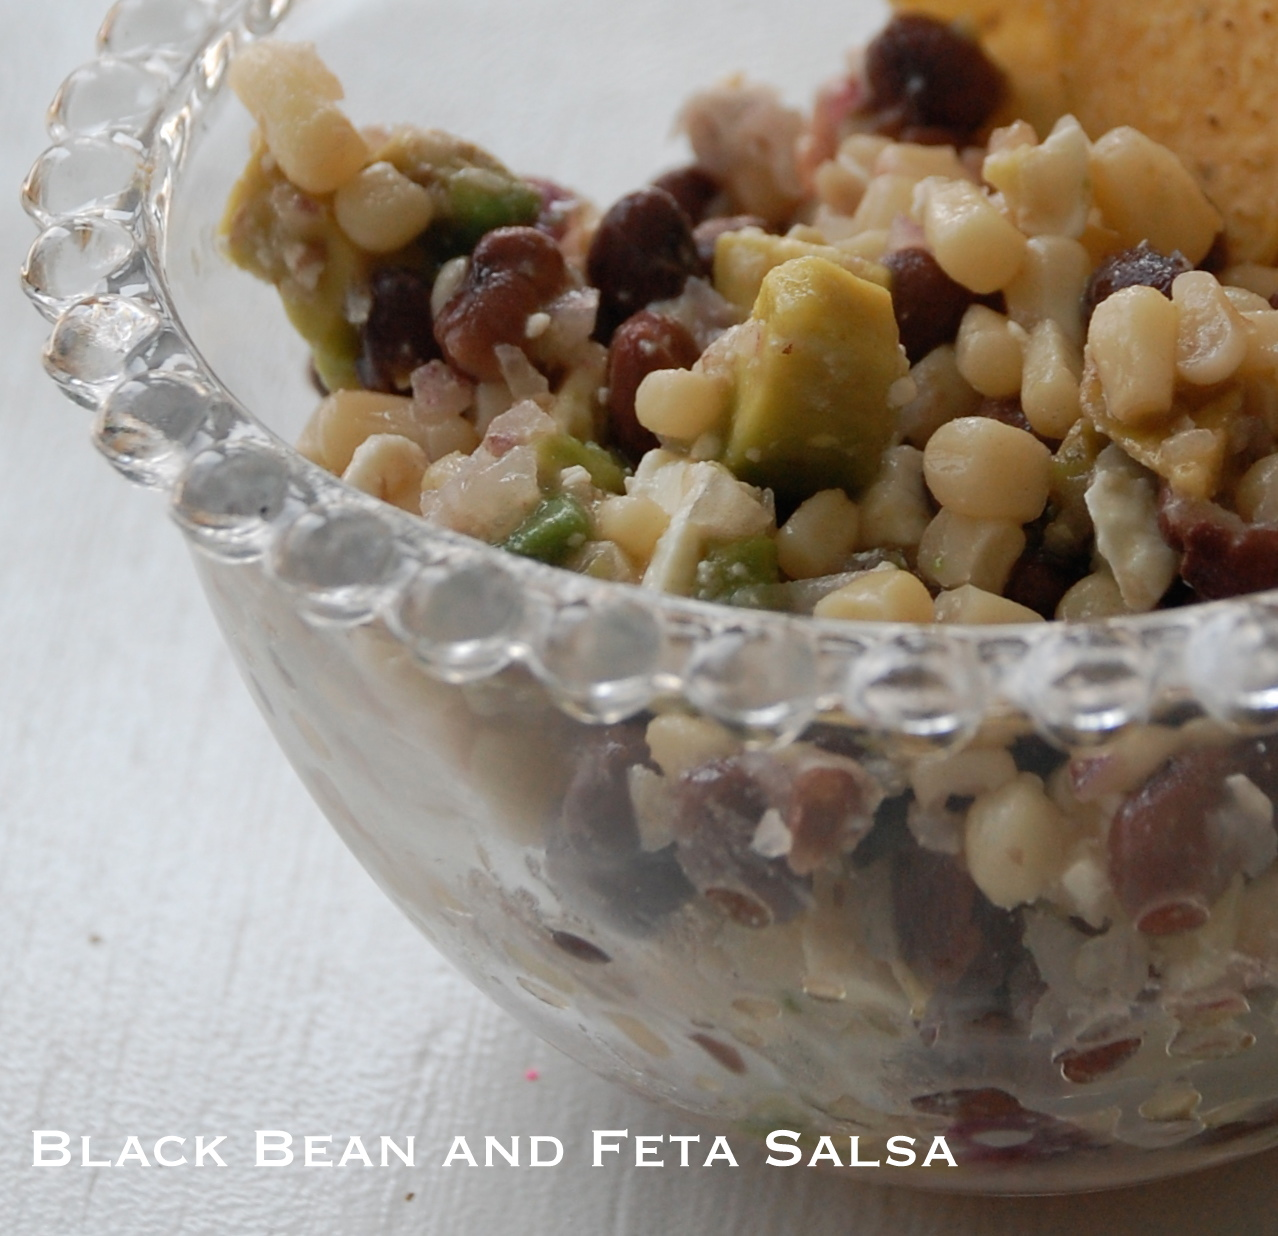 Black Bean and Feta Salsa | A Small Snippet